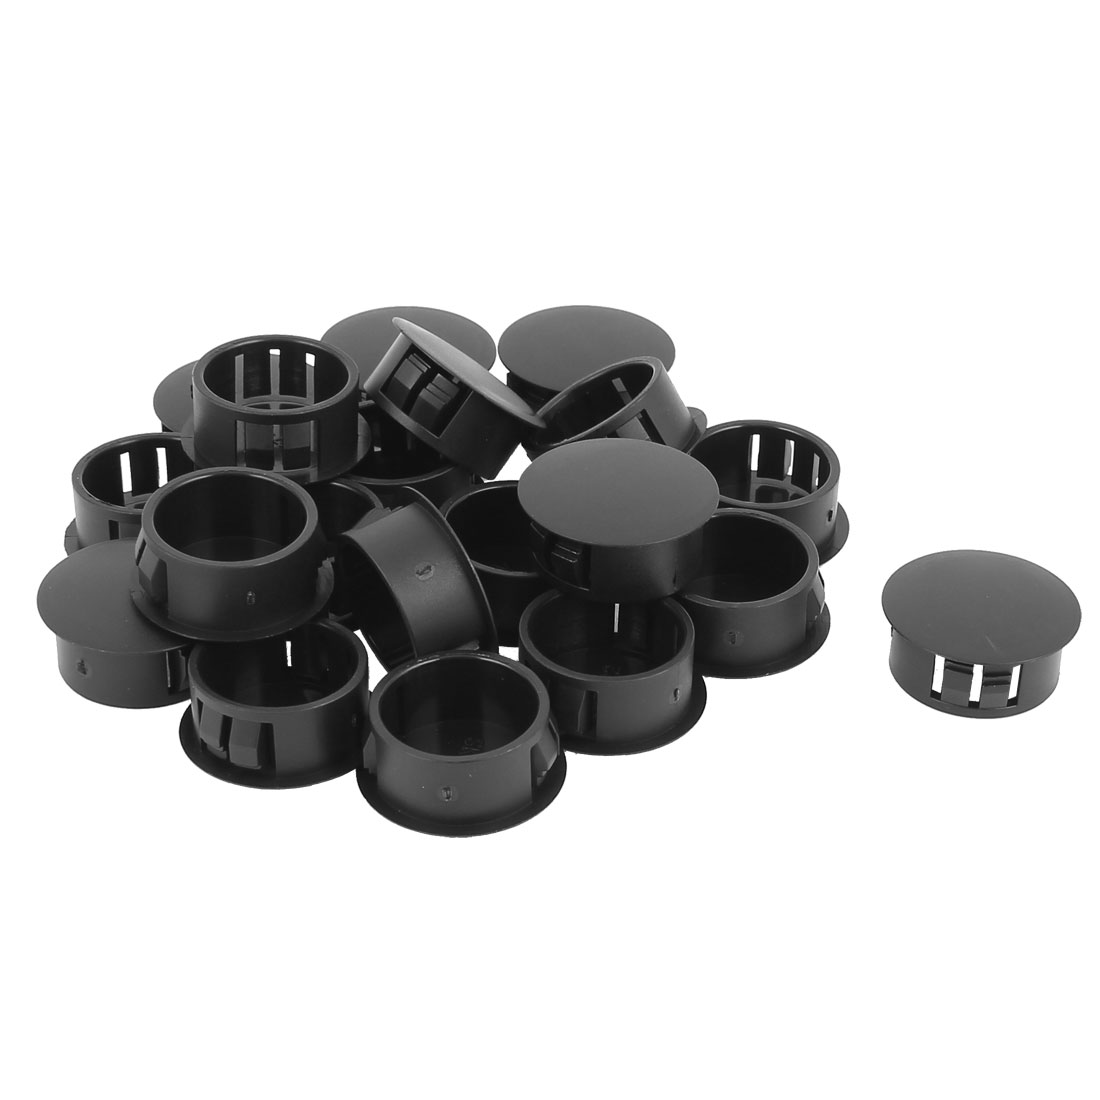 SKT-22 Plastic 22mm Dia Snap in Type Locking Hole Connectors Button Cover 20pcs